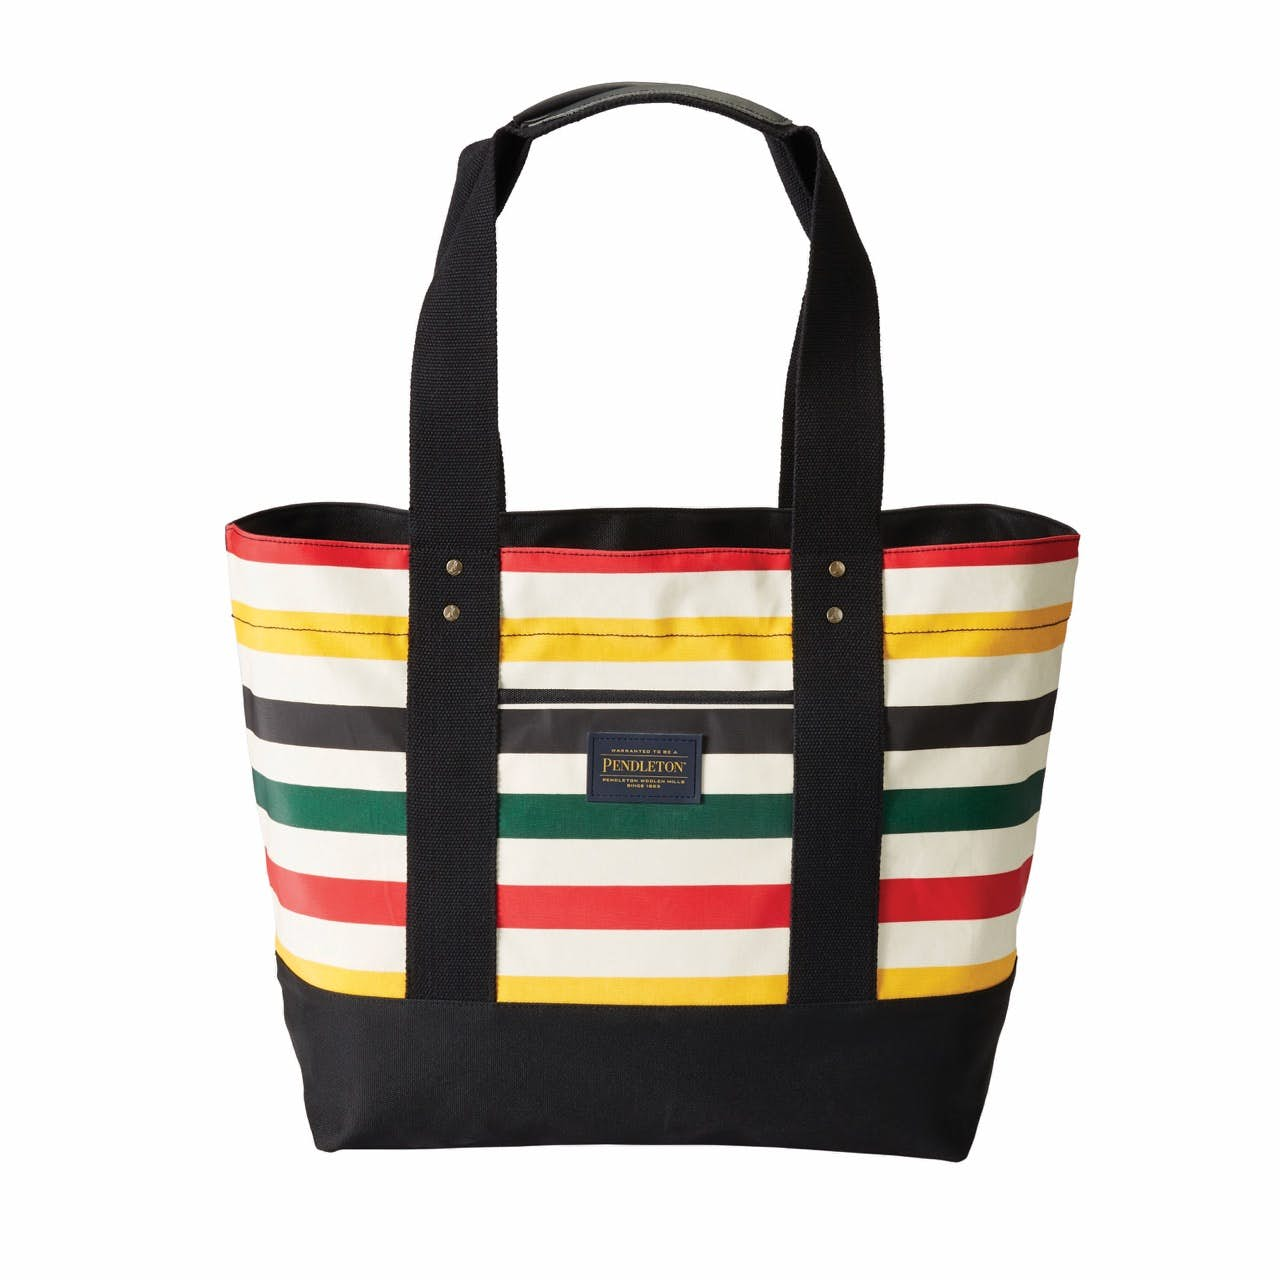 NEW STEELE CANVAS TRAVEL TOTE BAG NEW WITH TAGS NWT